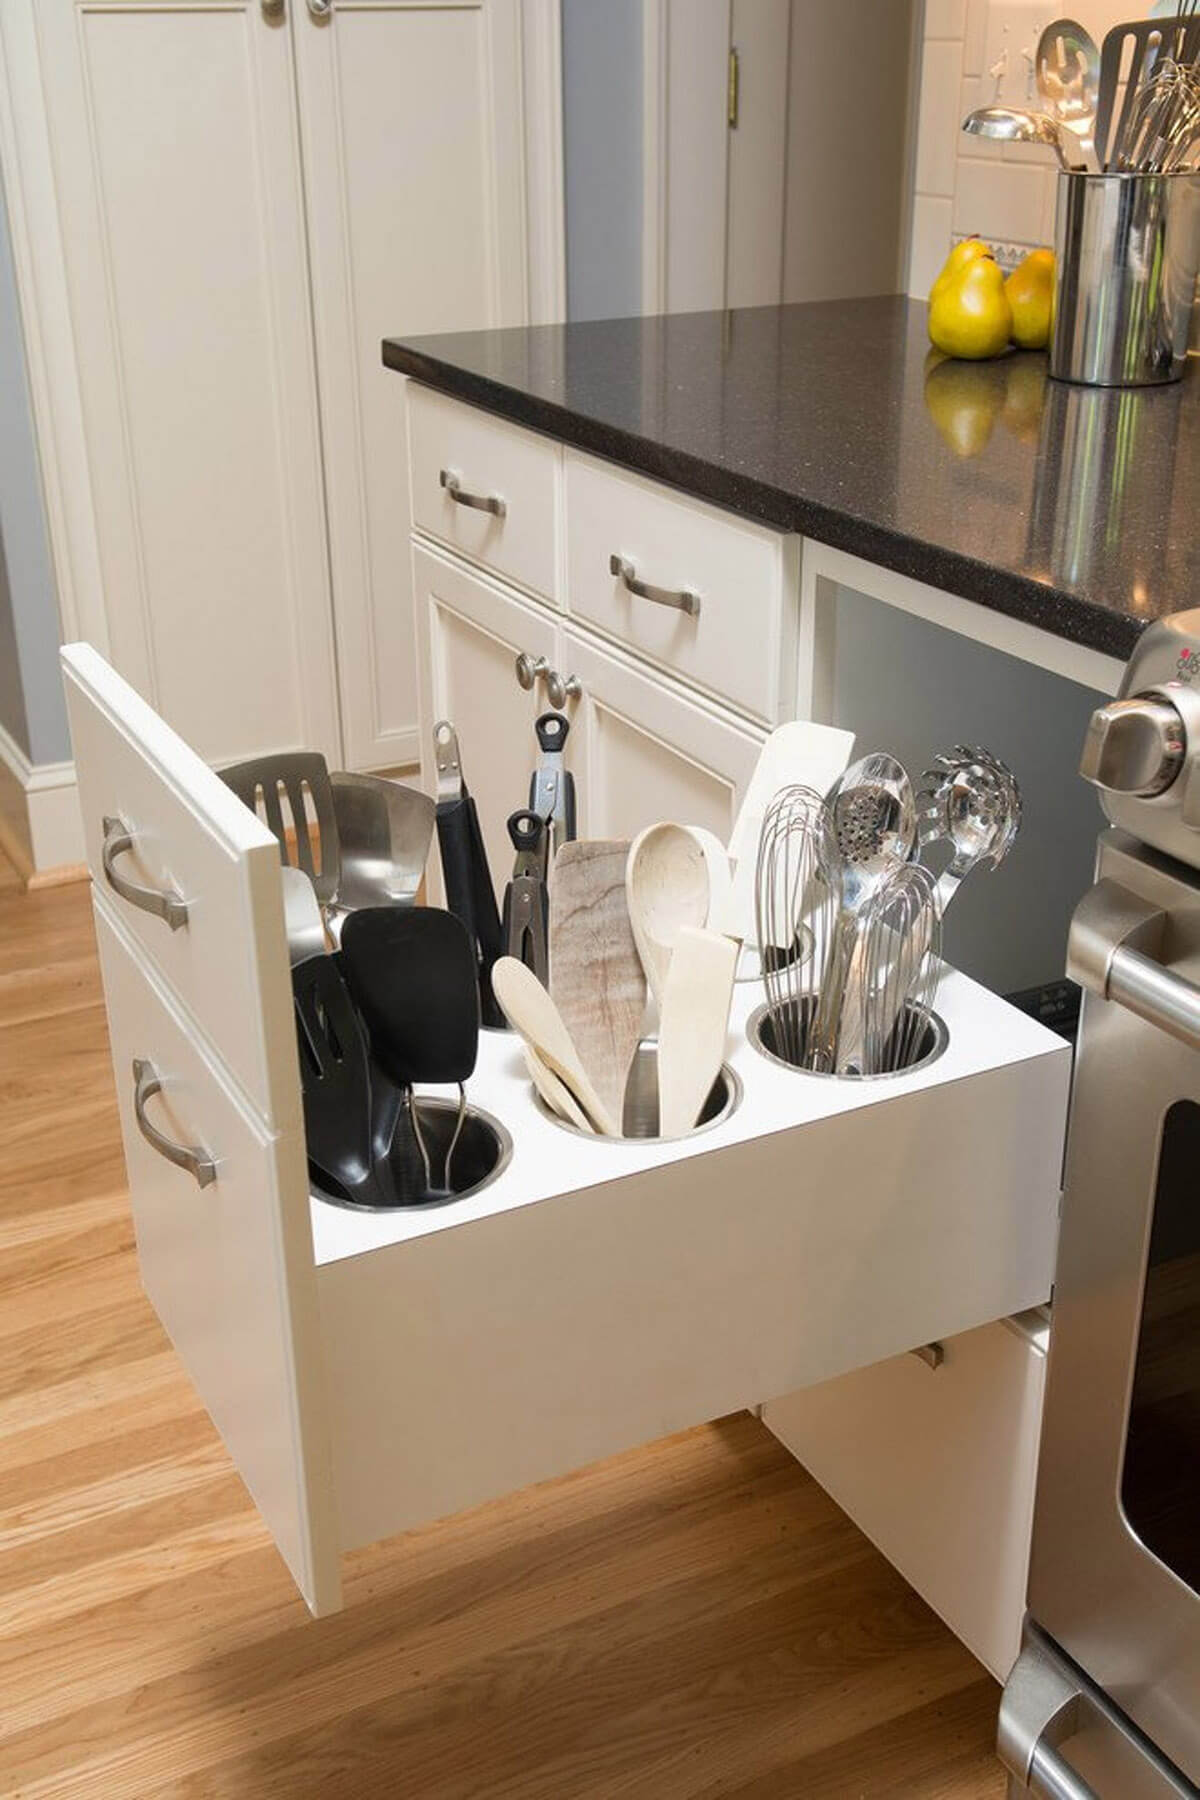 De-clutter Your Counter Space with Hidden Utensil Caddies